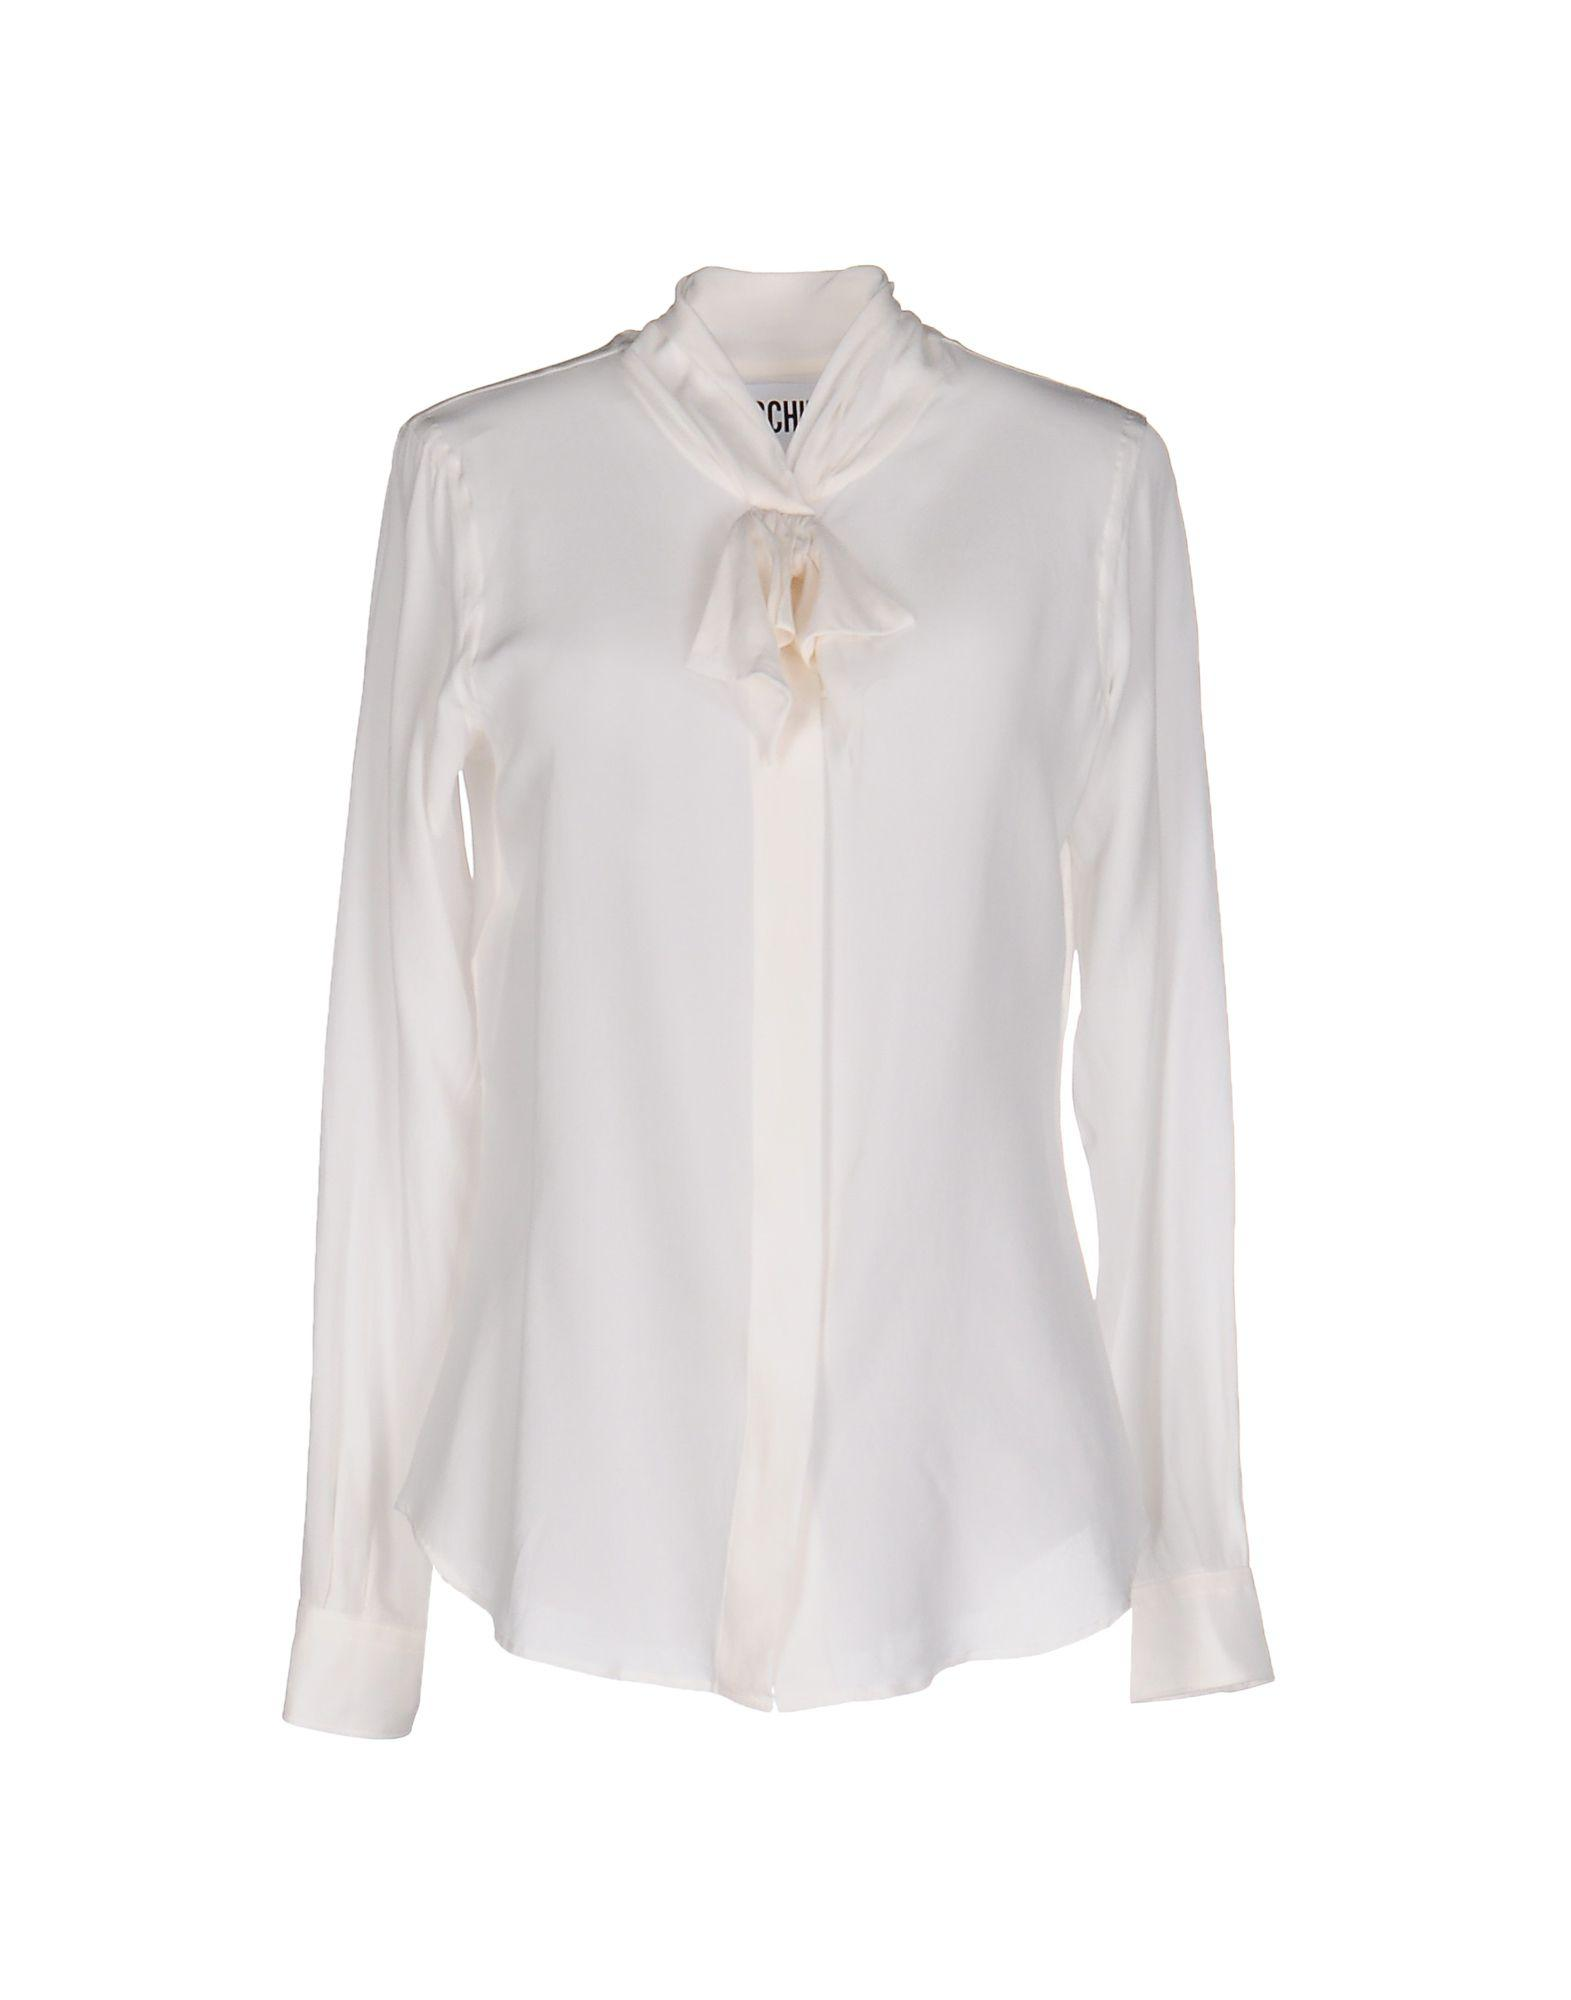 Moschino Shirts & Blouses With Bow In White